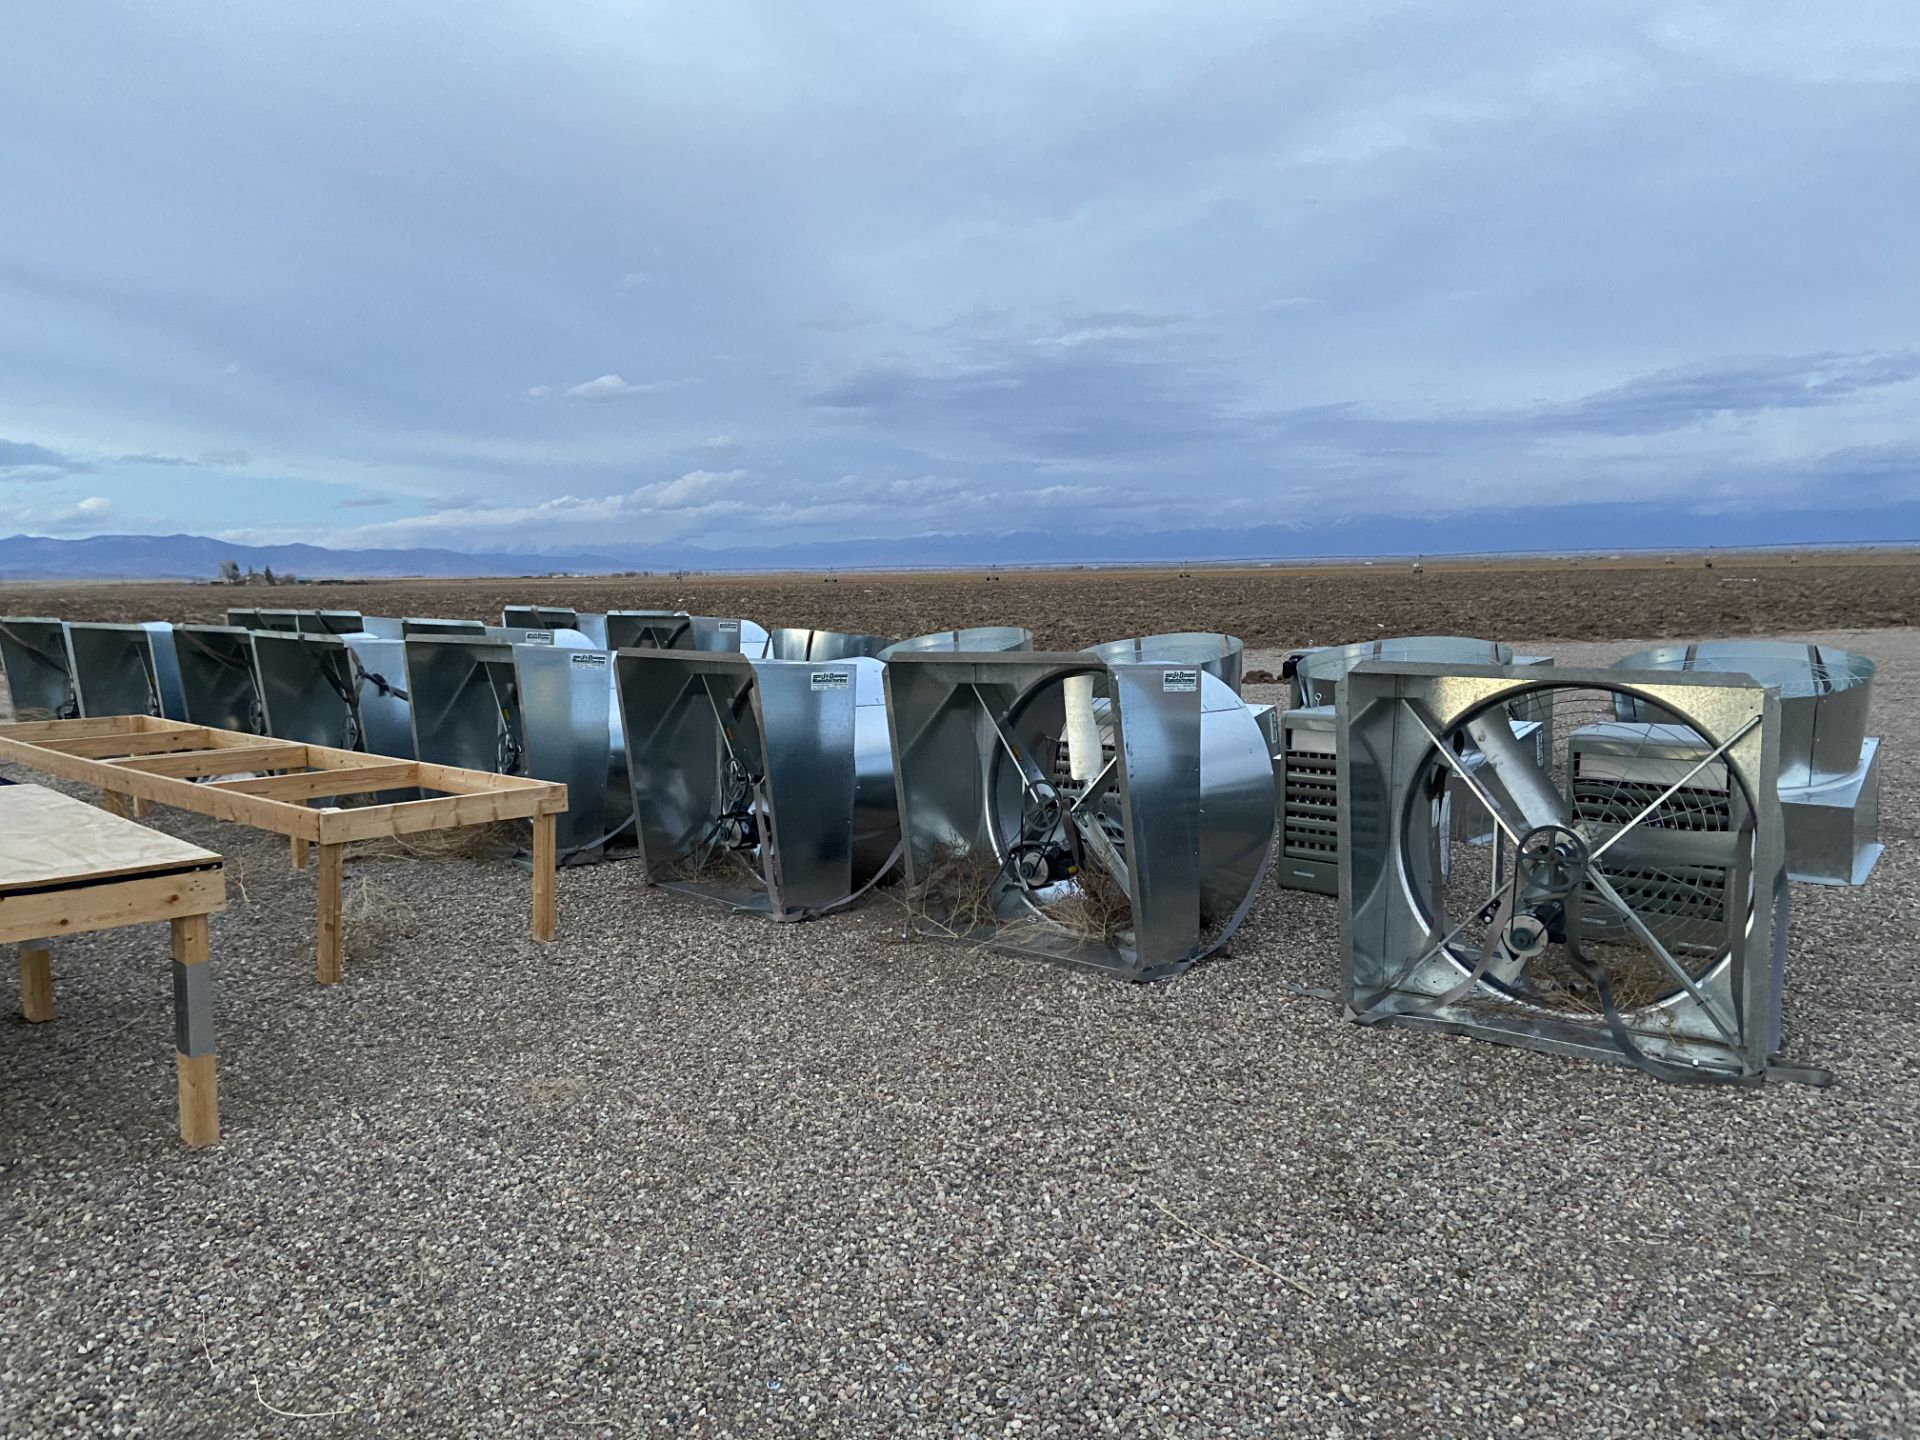 Scenic Acres Greenhouse Mfg Greenhouse w/ Four Exhaust Fans and Two Heaters, 34' x 200' gothic hoop - Image 4 of 9